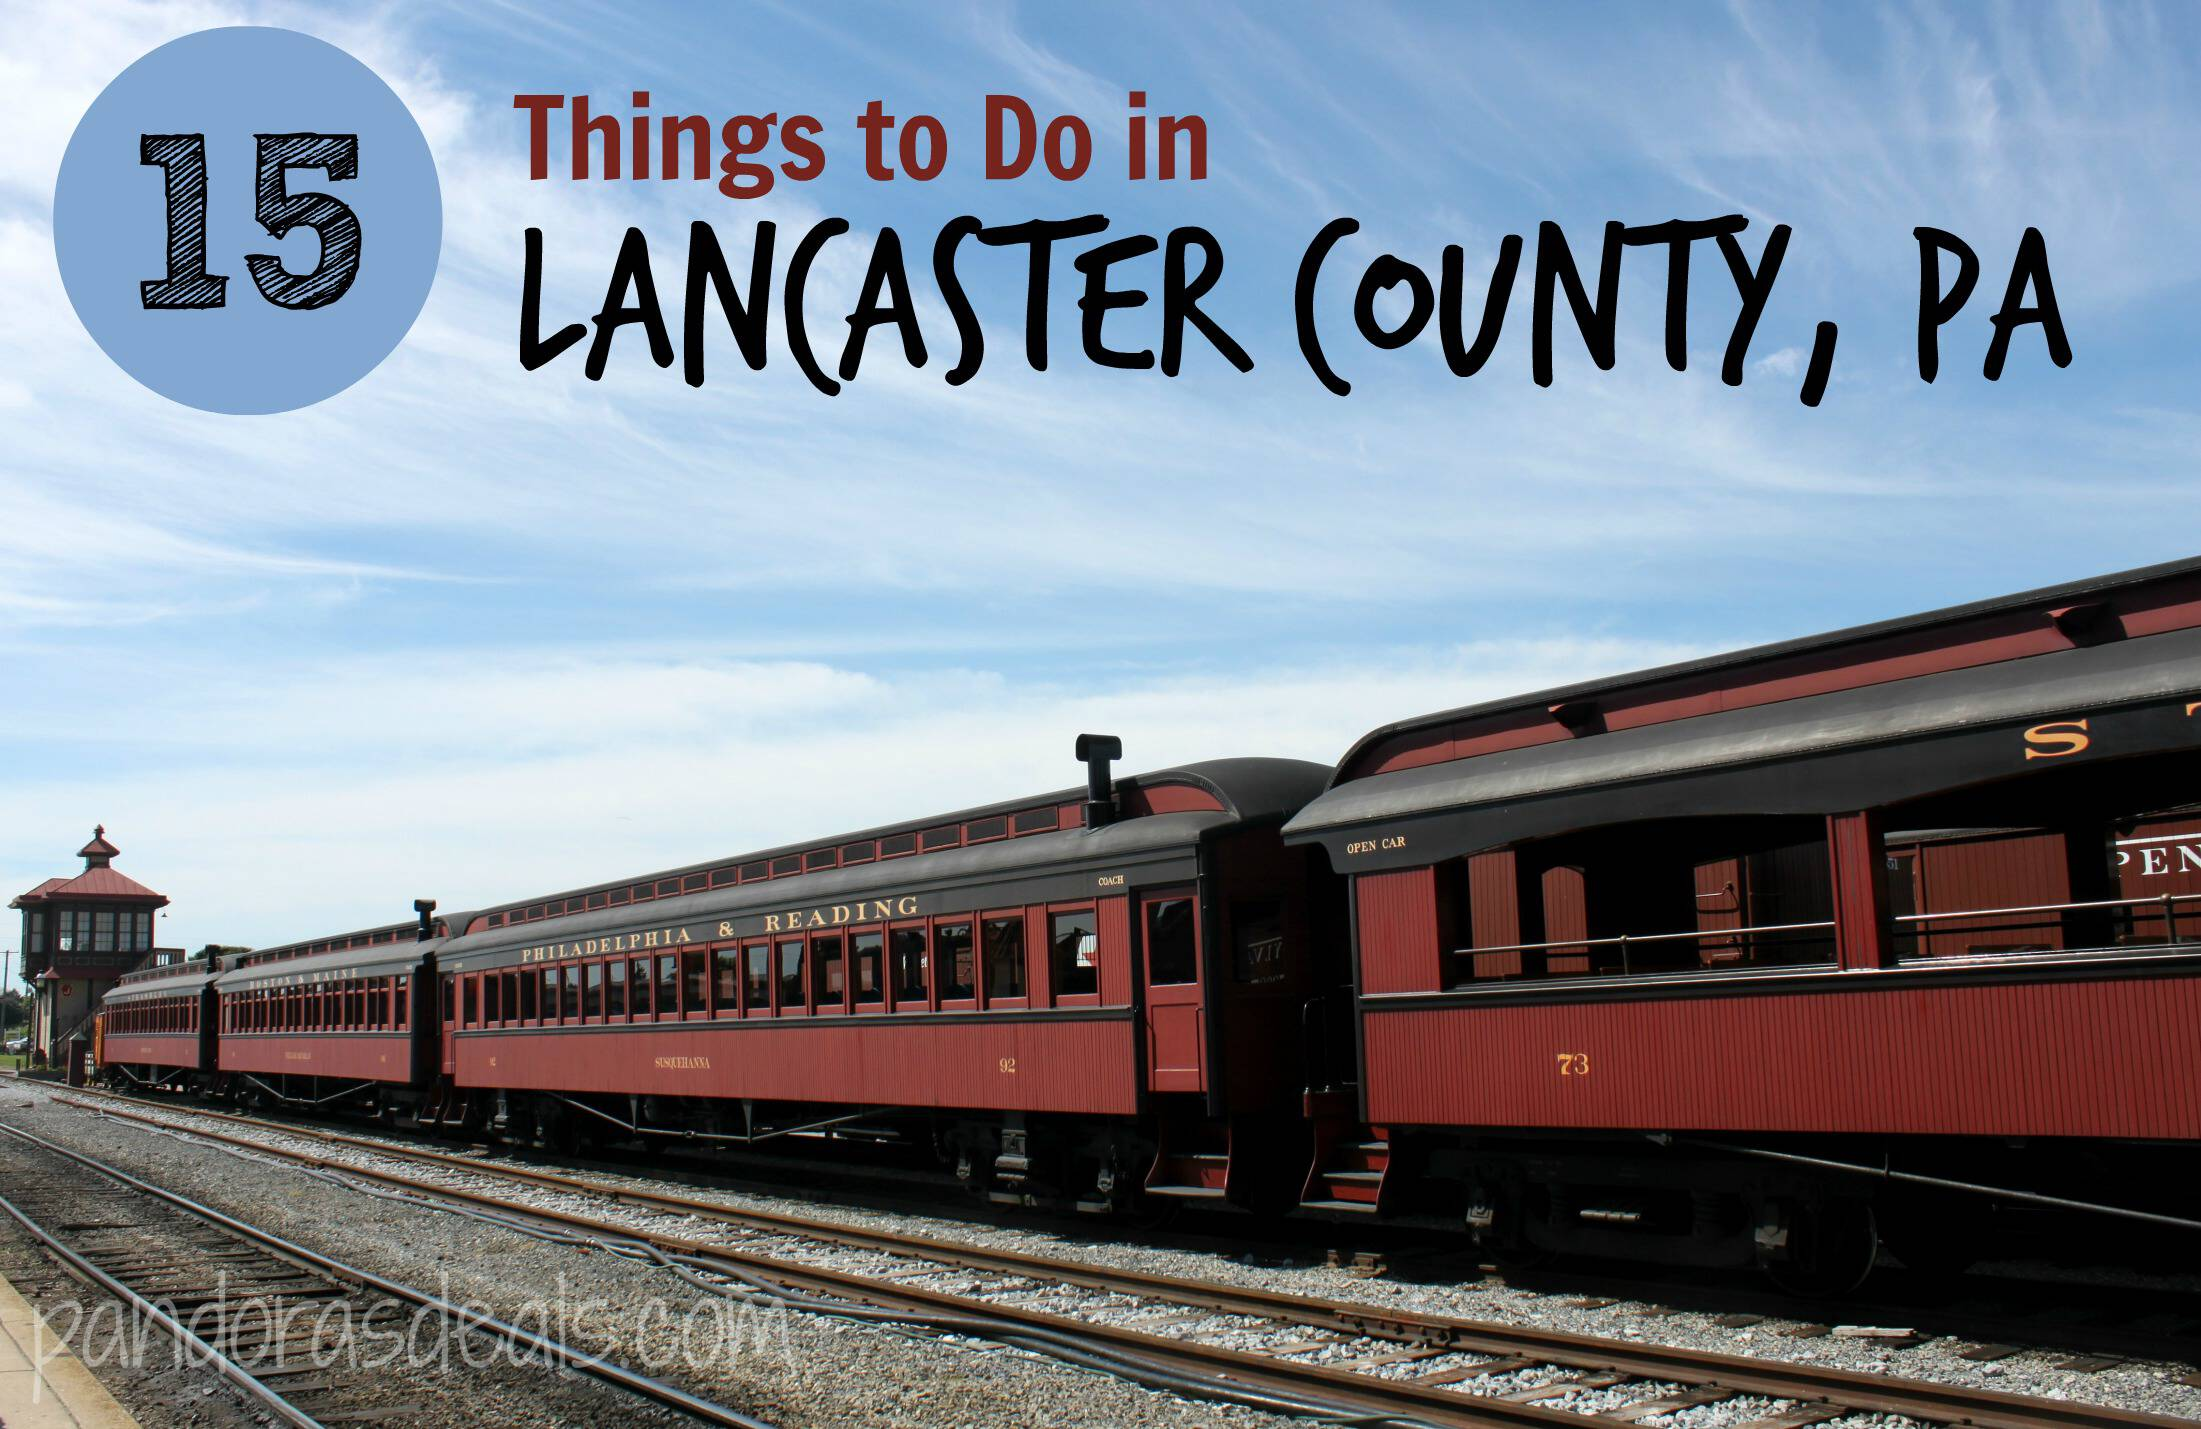 Looking for things to do in Lancaster County, PA? I have a lot of ideas for staycations in this neck of the woods. Come check it out and make some plans!